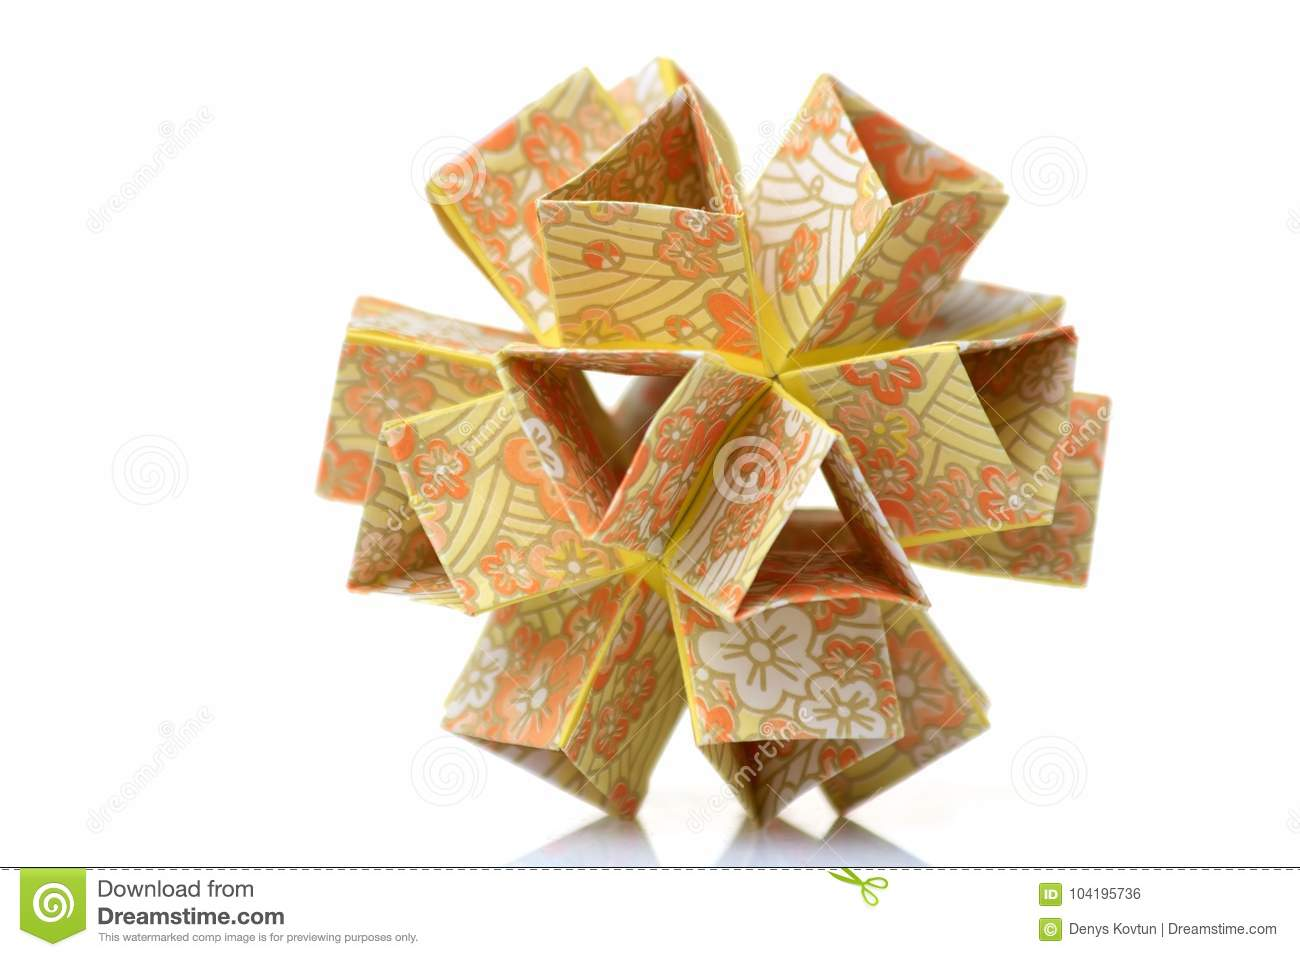 Flower Modular Origami Stock Photo Image Of Figure 104195736